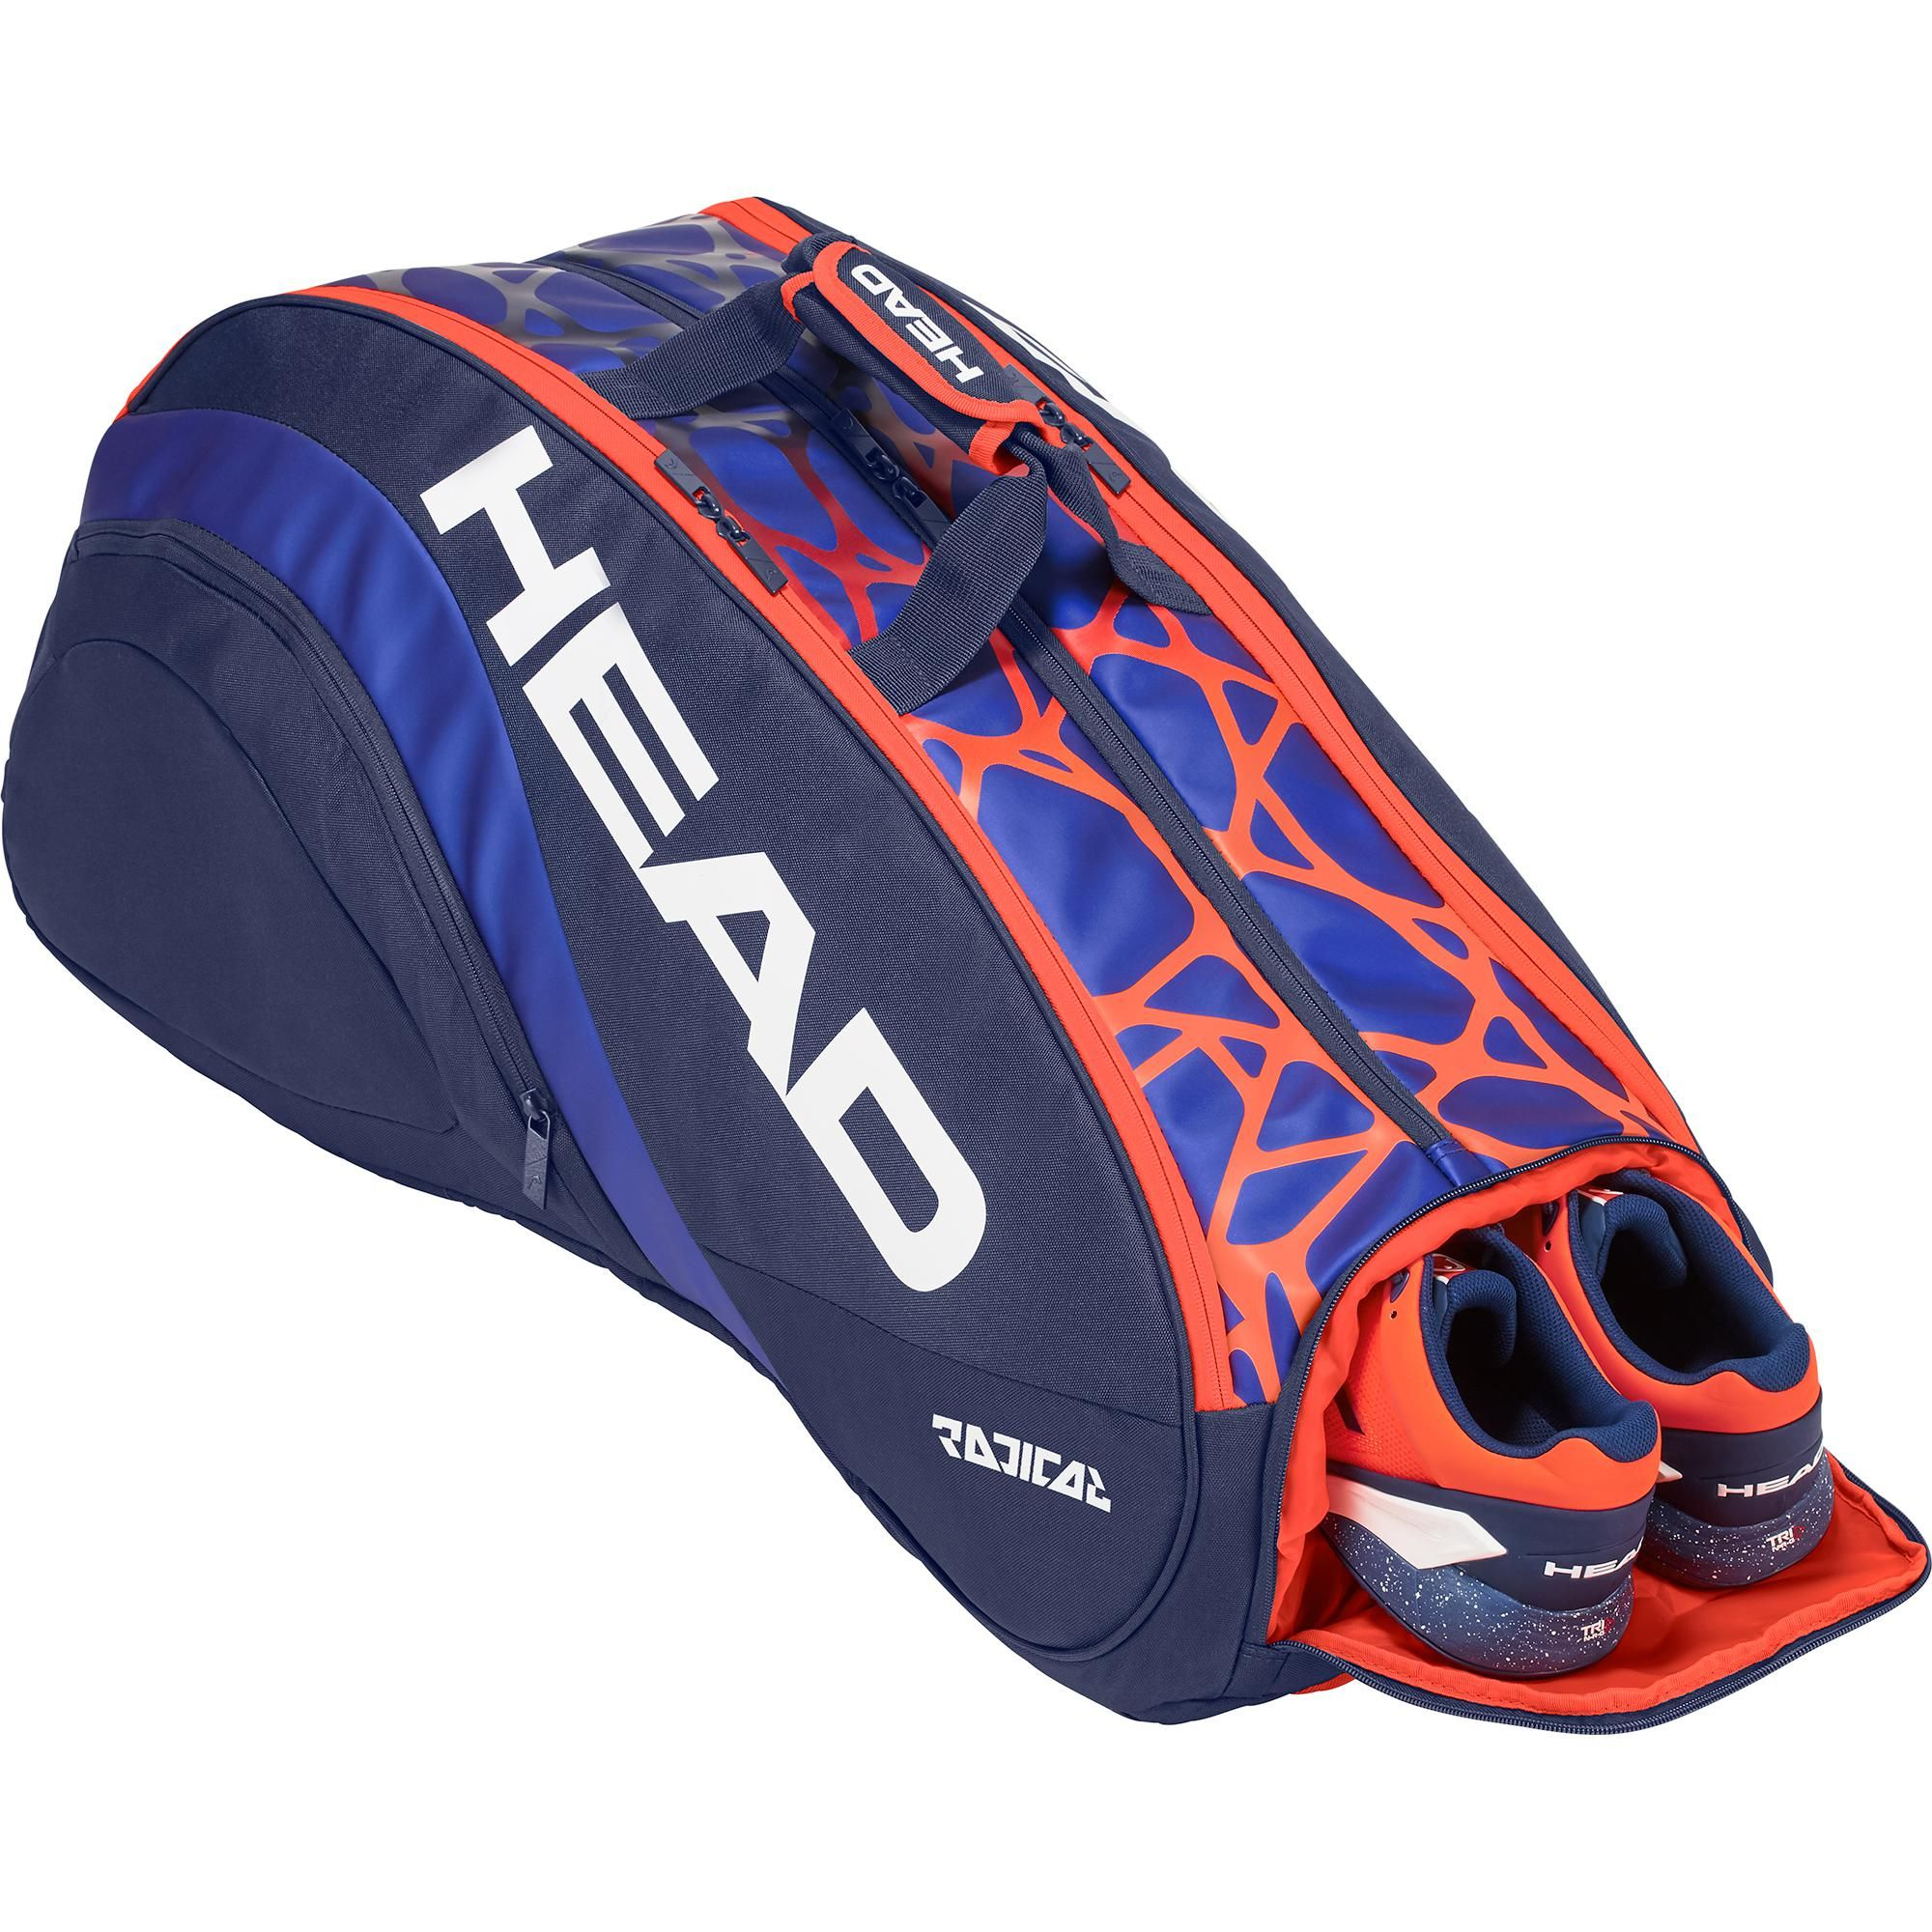 Finding The Comfortable Tennis Racquet Bag In 2020 Tennis Racket Pro Racquet Bag Tennis Bag Backpack Pockets